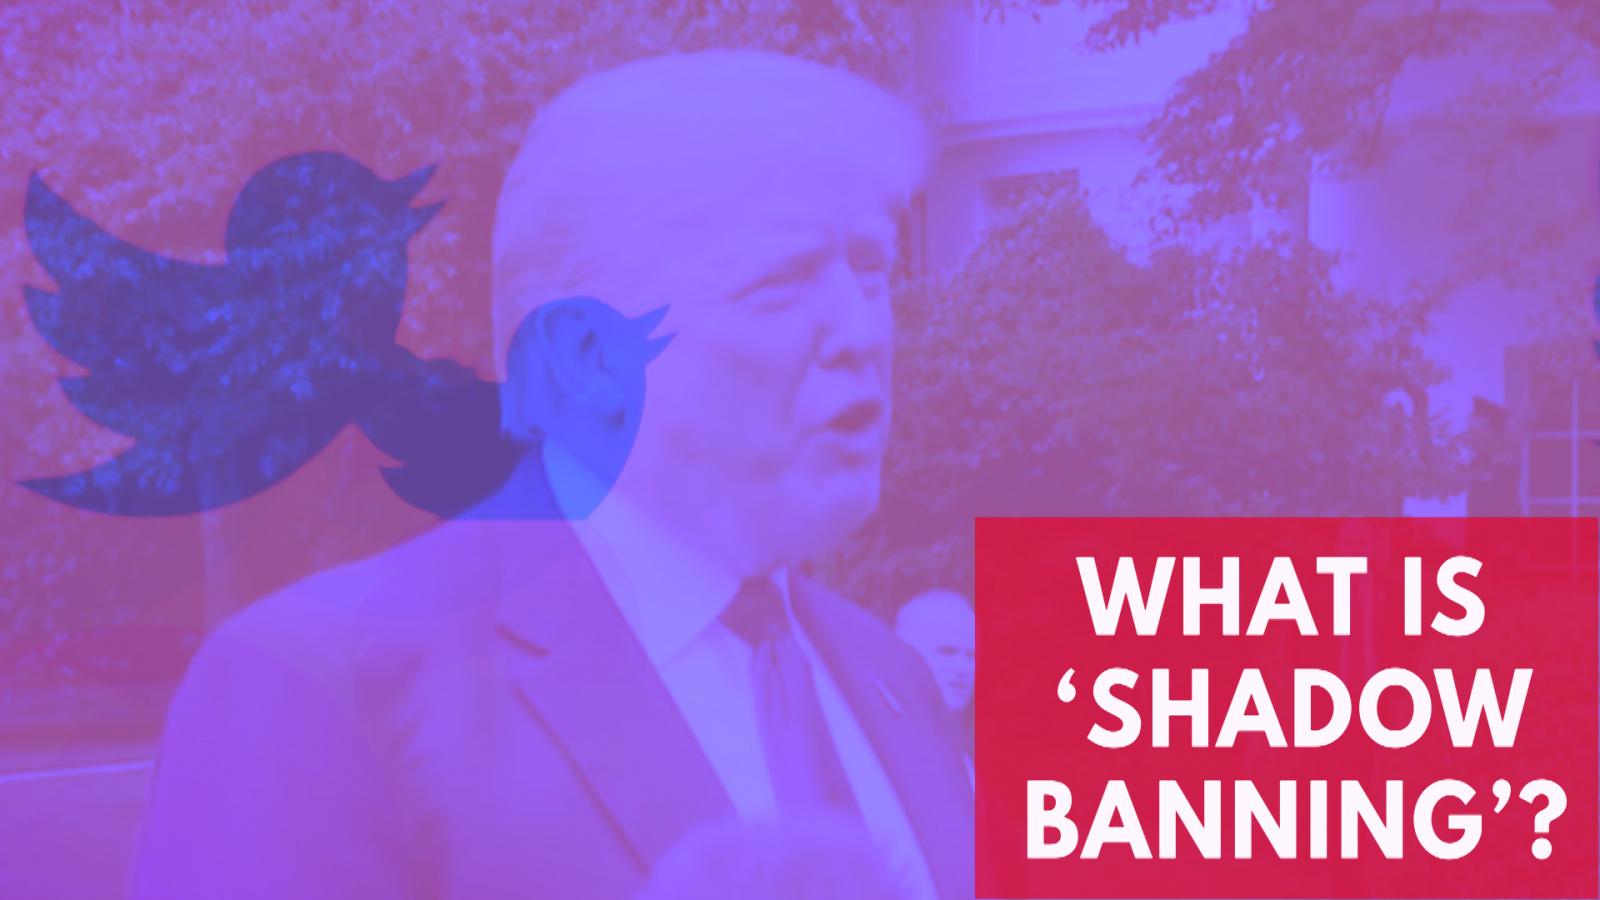 What Is Shadow Banning